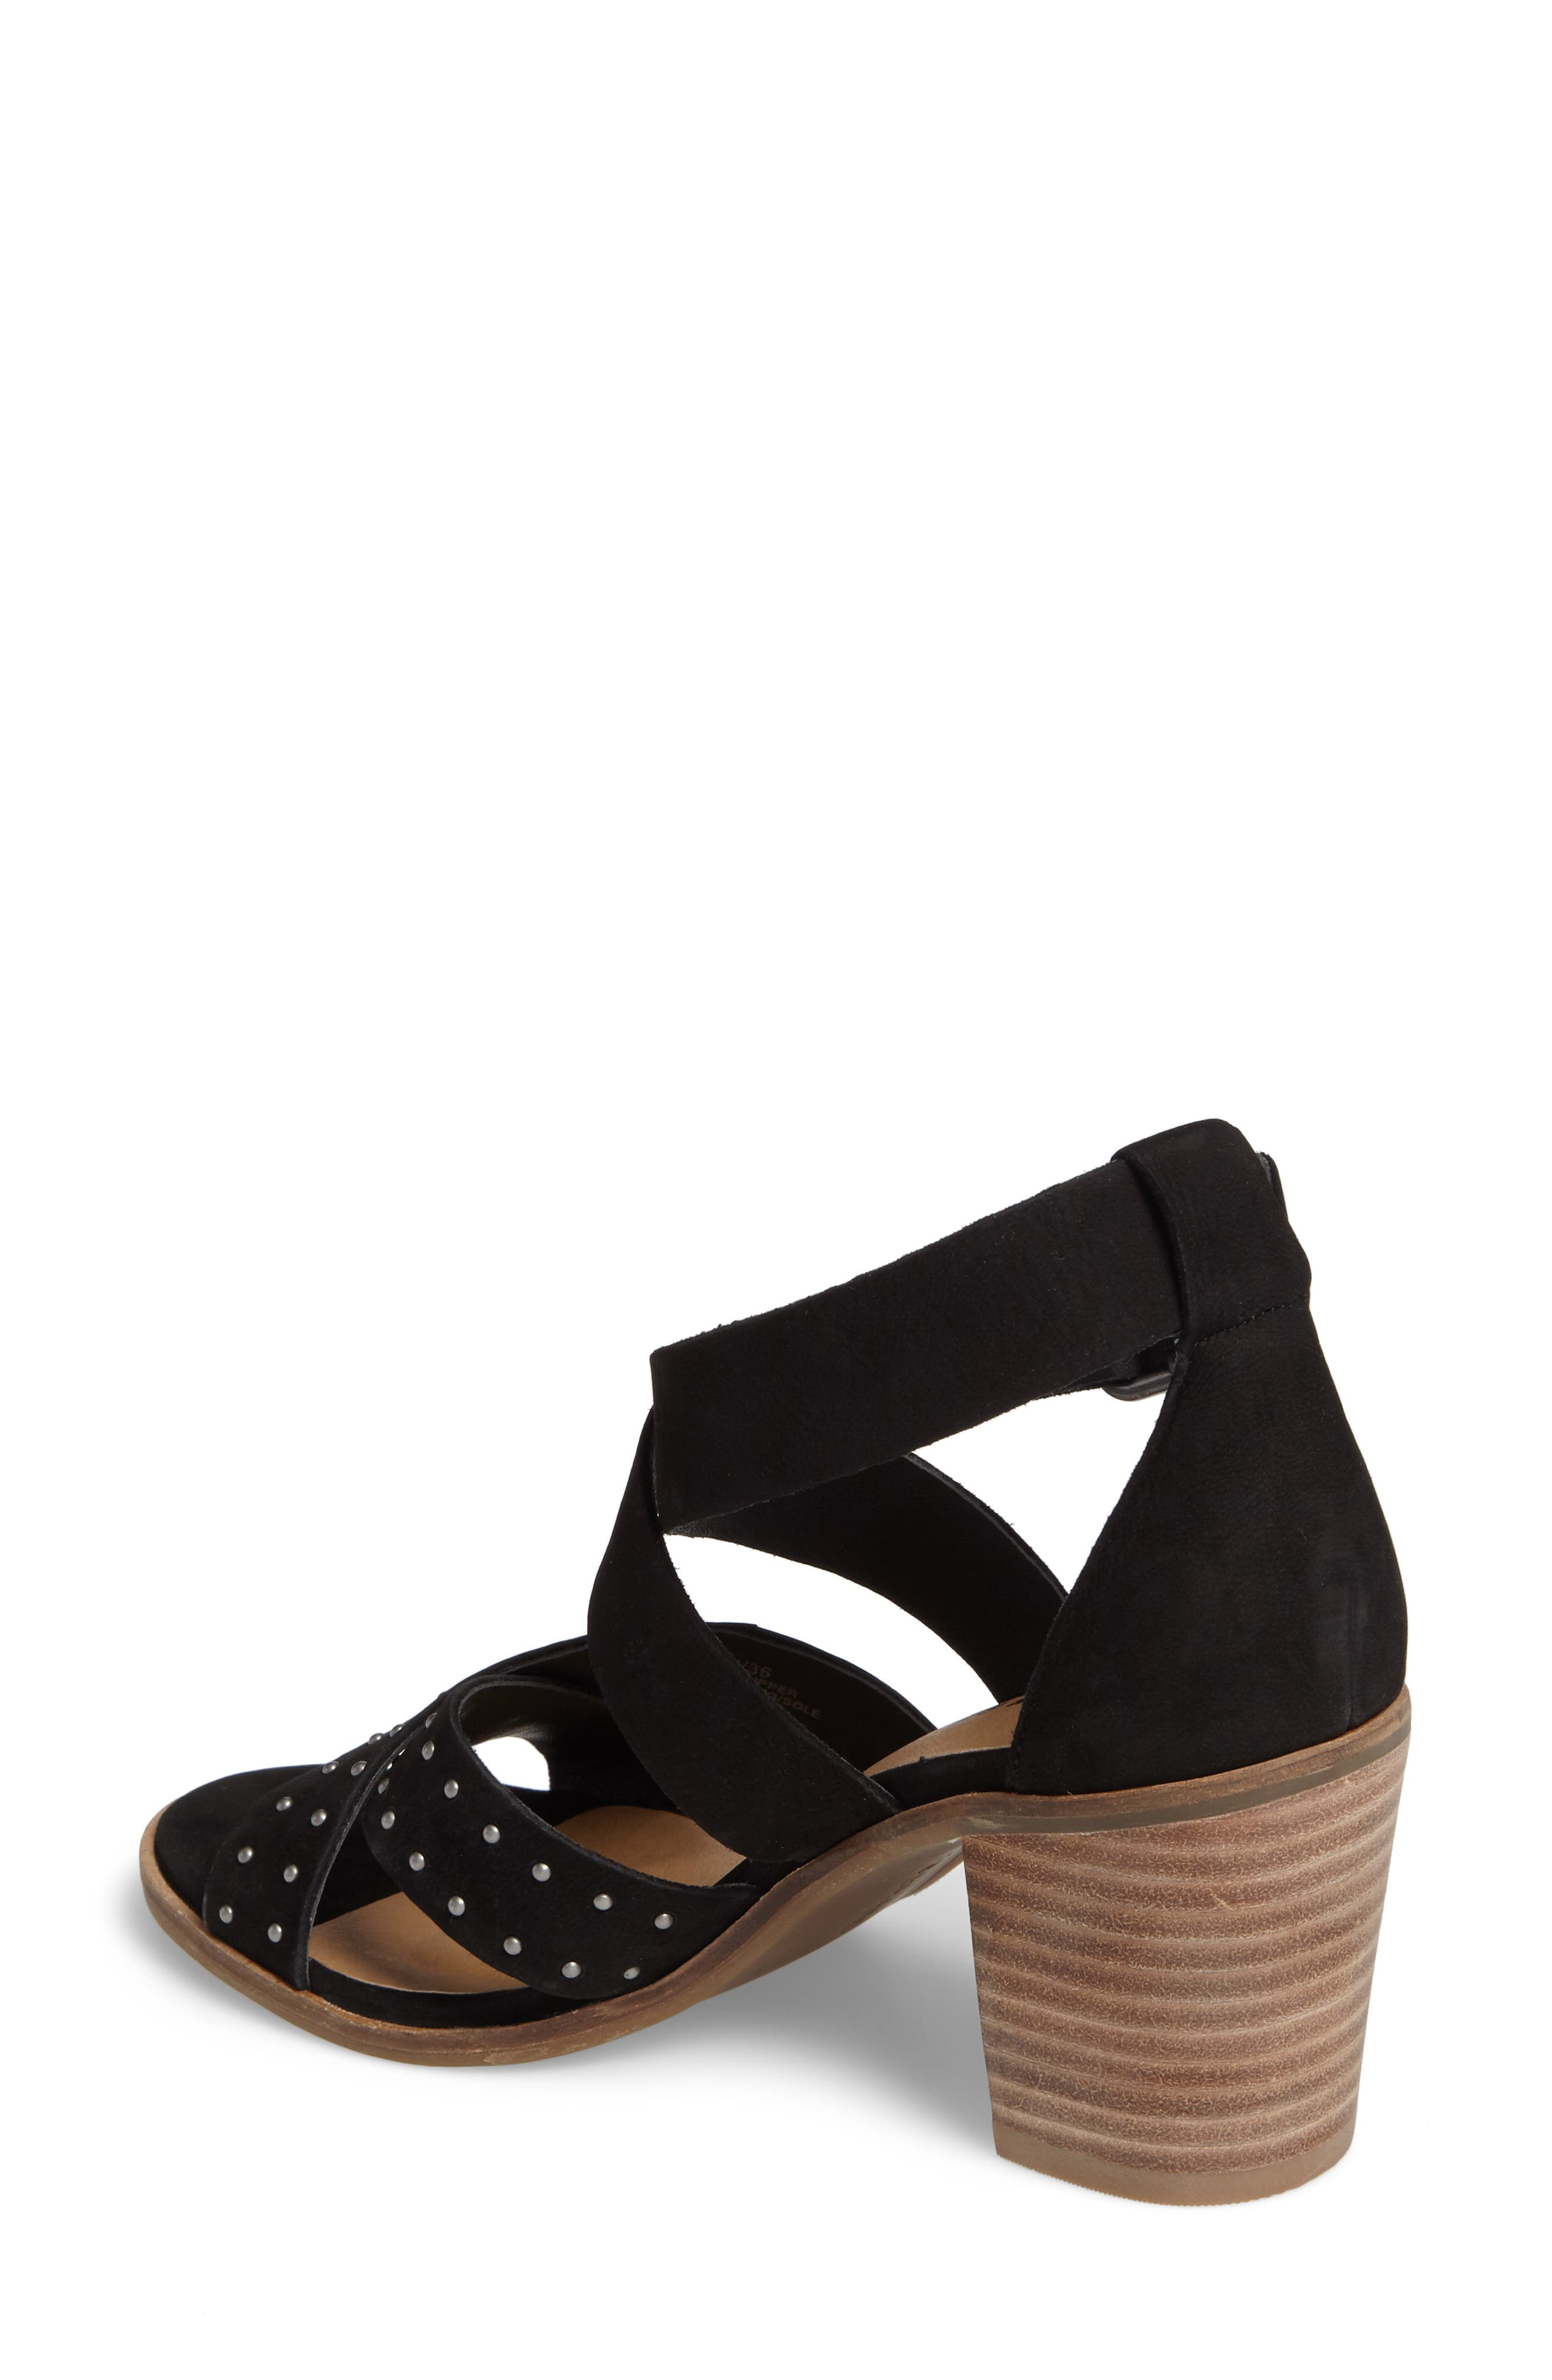 LUCKY BRAND, Kesey Block Heel Sandal, Alternate thumbnail 2, color, 001